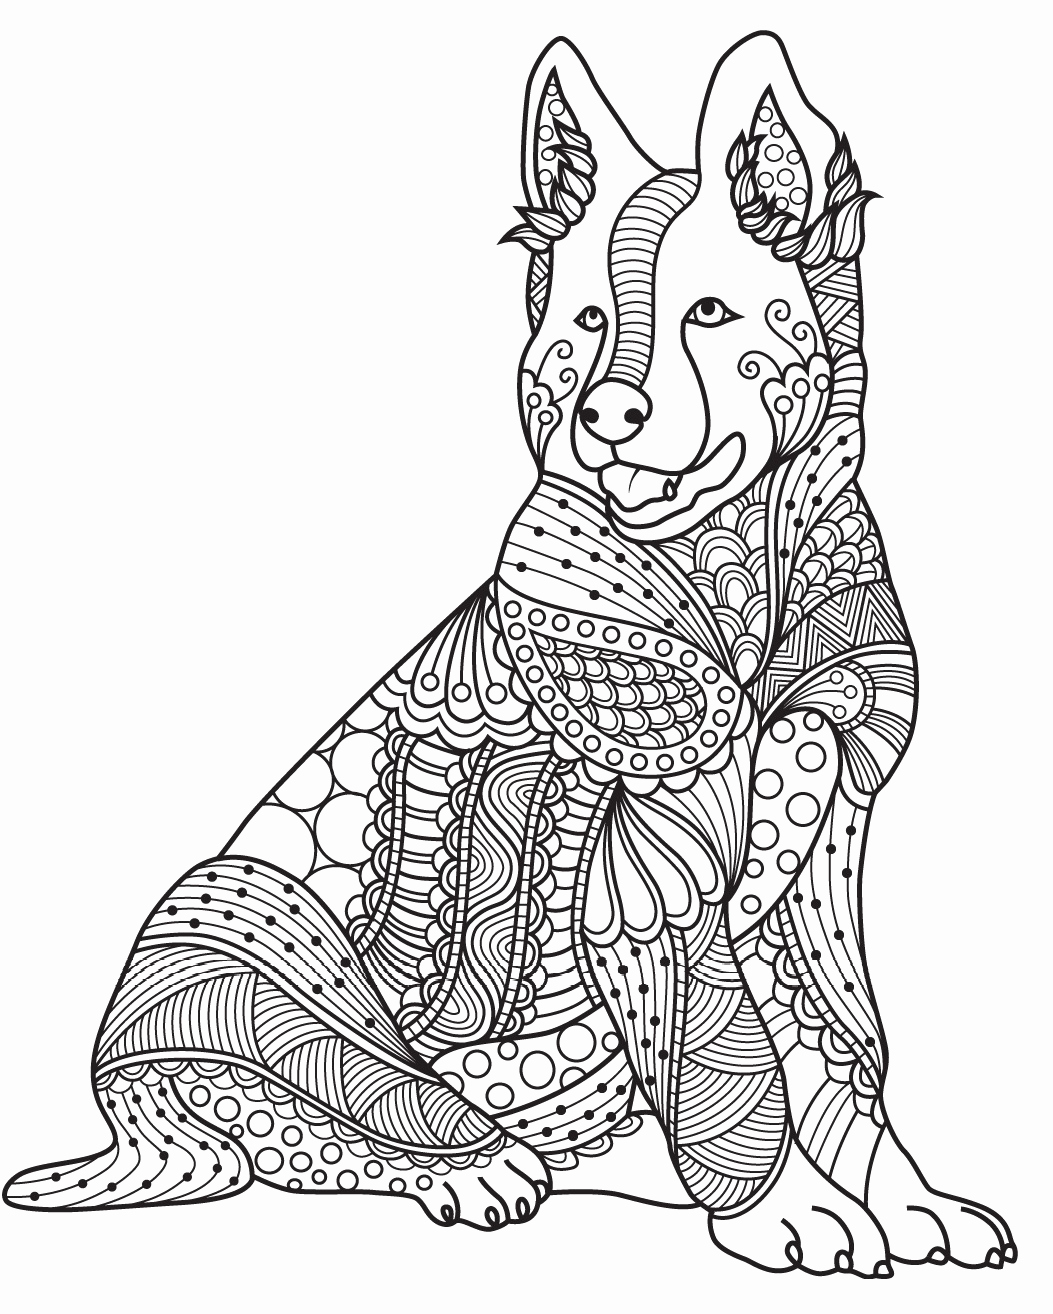 1053x1314 Dog Coloring Pages Of Realistic Dogs